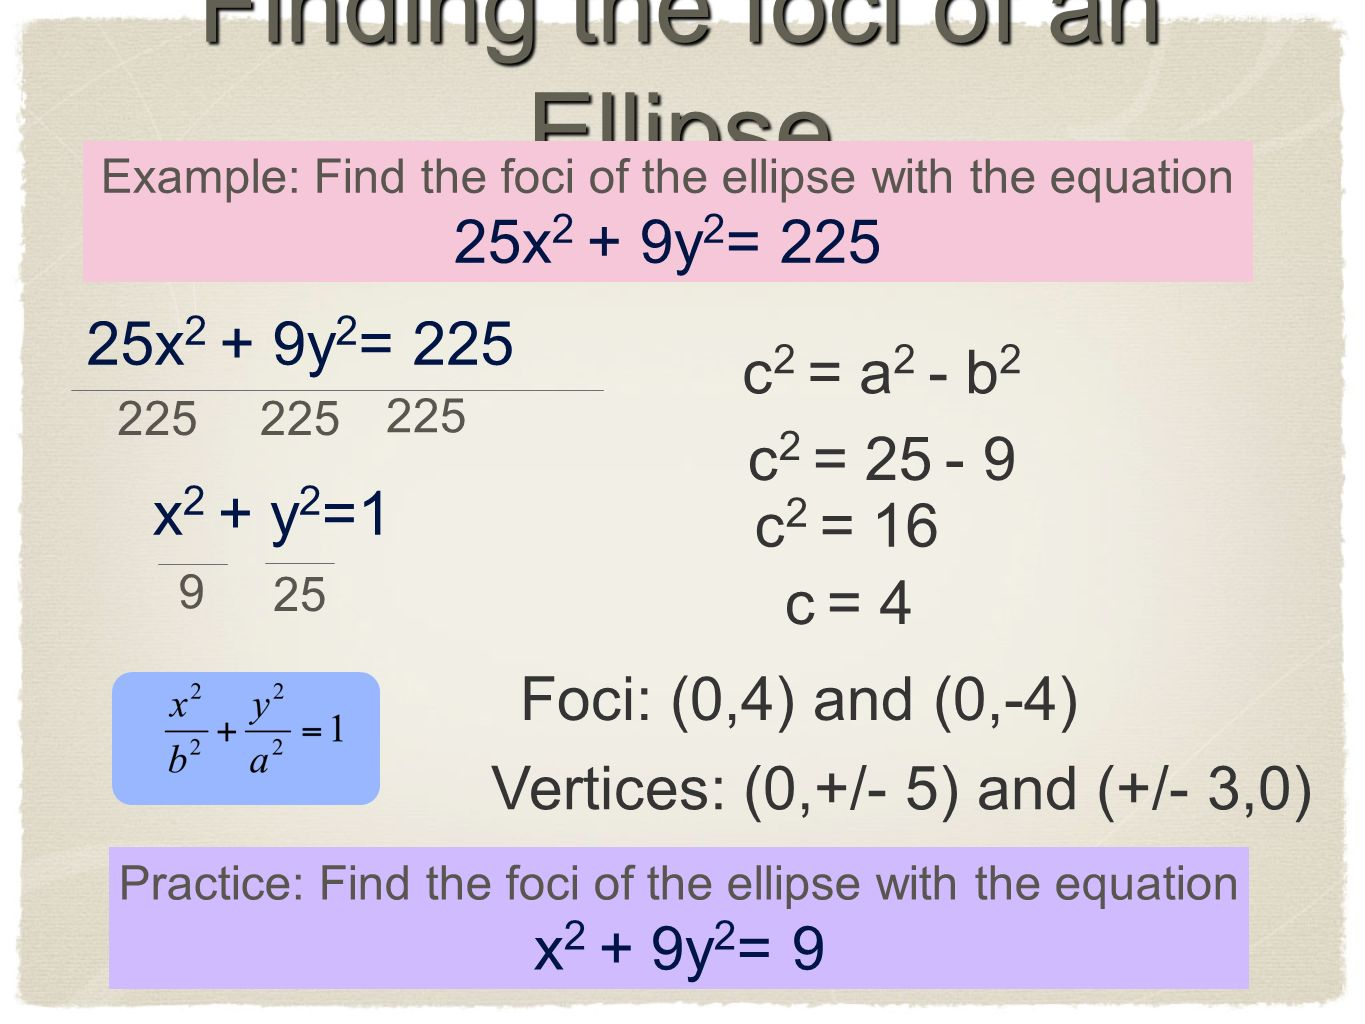 Finding the foci of an Ellipse Example: Find the foci of the ellipse with the equation 25x 2 + 9y 2 = x 2 + 9y 2 = x 2 + y 2 = c 2 = a 2 - b 2 c 2 = c 2 = 16 c = 4 Foci: (0,4) and (0,-4) Vertices: (0,+/- 5) and (+/- 3,0) Practice: Find the foci of the ellipse with the equation x 2 + 9y 2 = 9